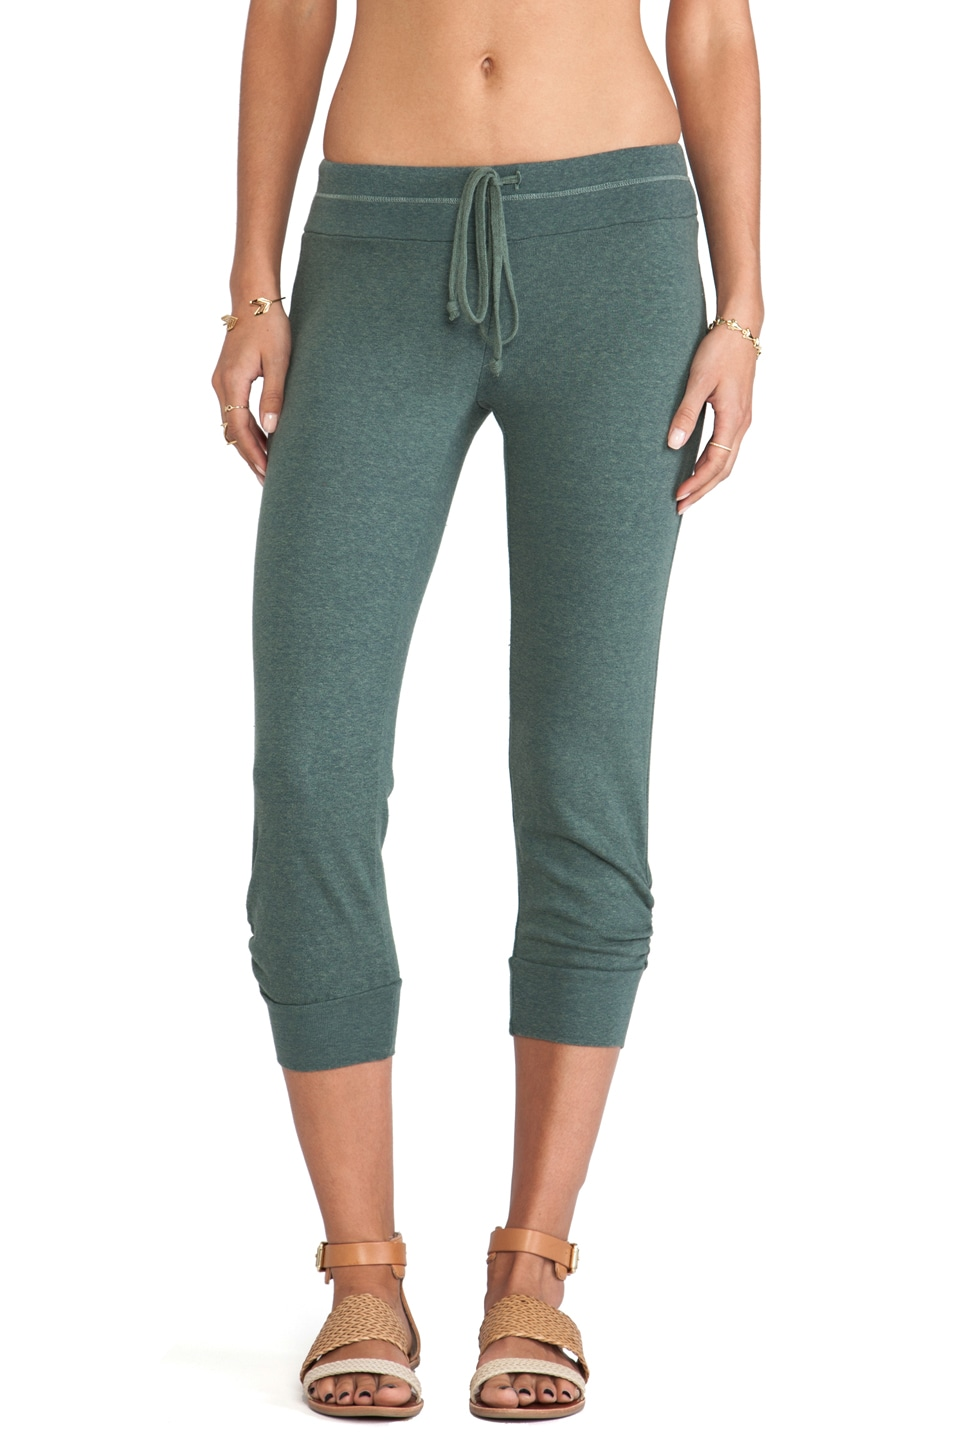 Splendid Sweat Pant in Camo Green